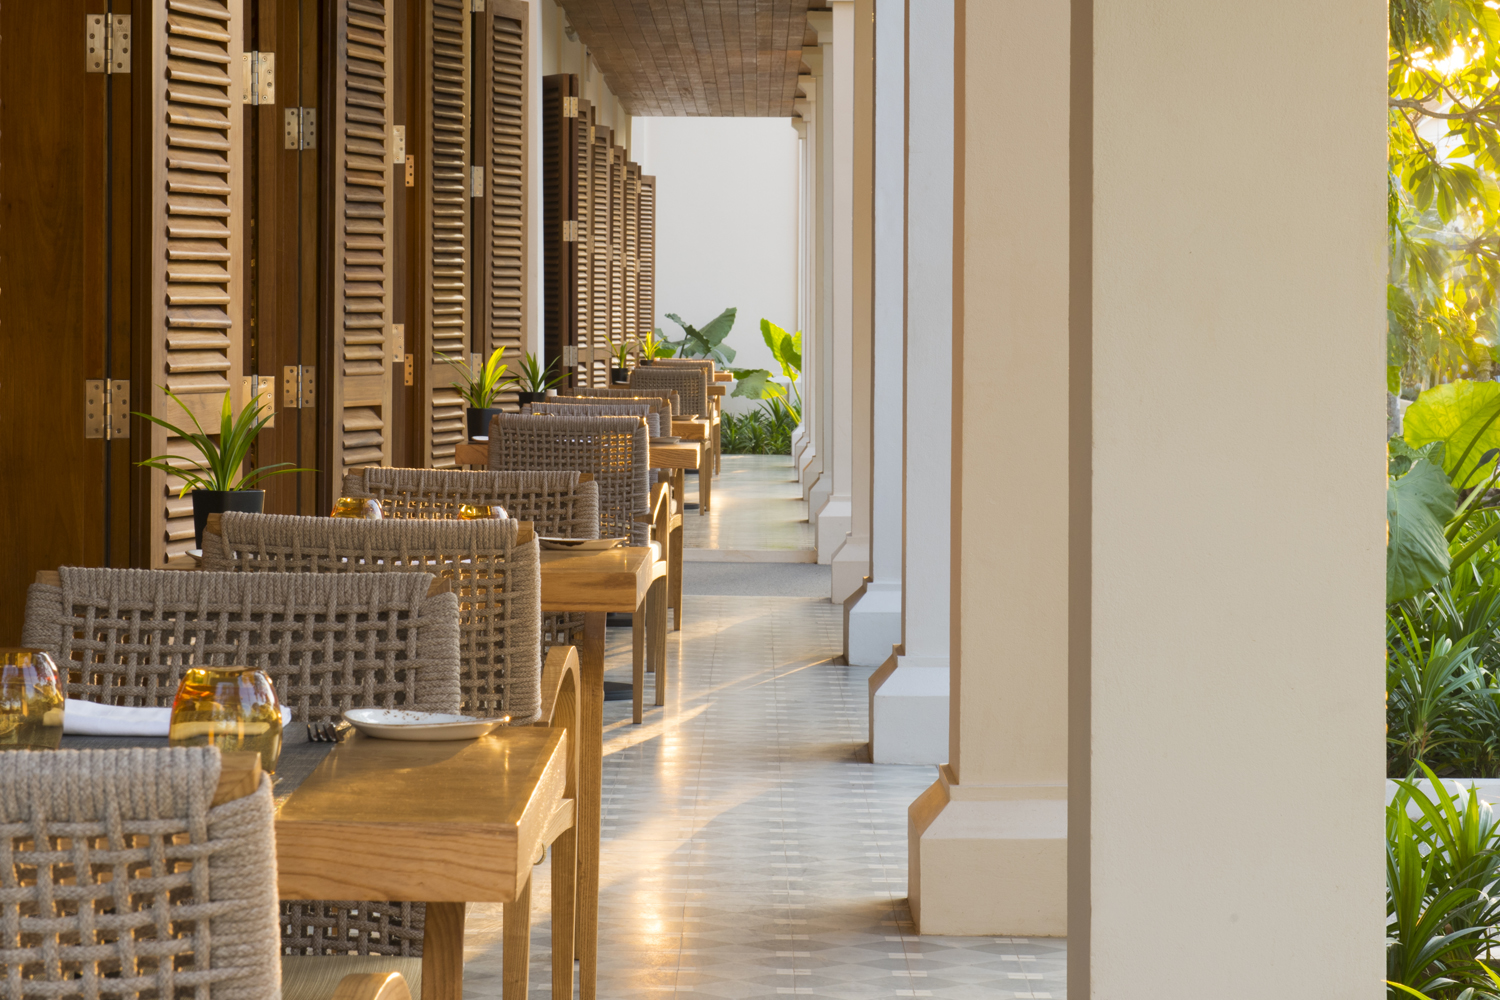 Hotel Azerai; Luang Prabang; Laos a project by Adrian Zecha, Photography by Michelle Chaplow